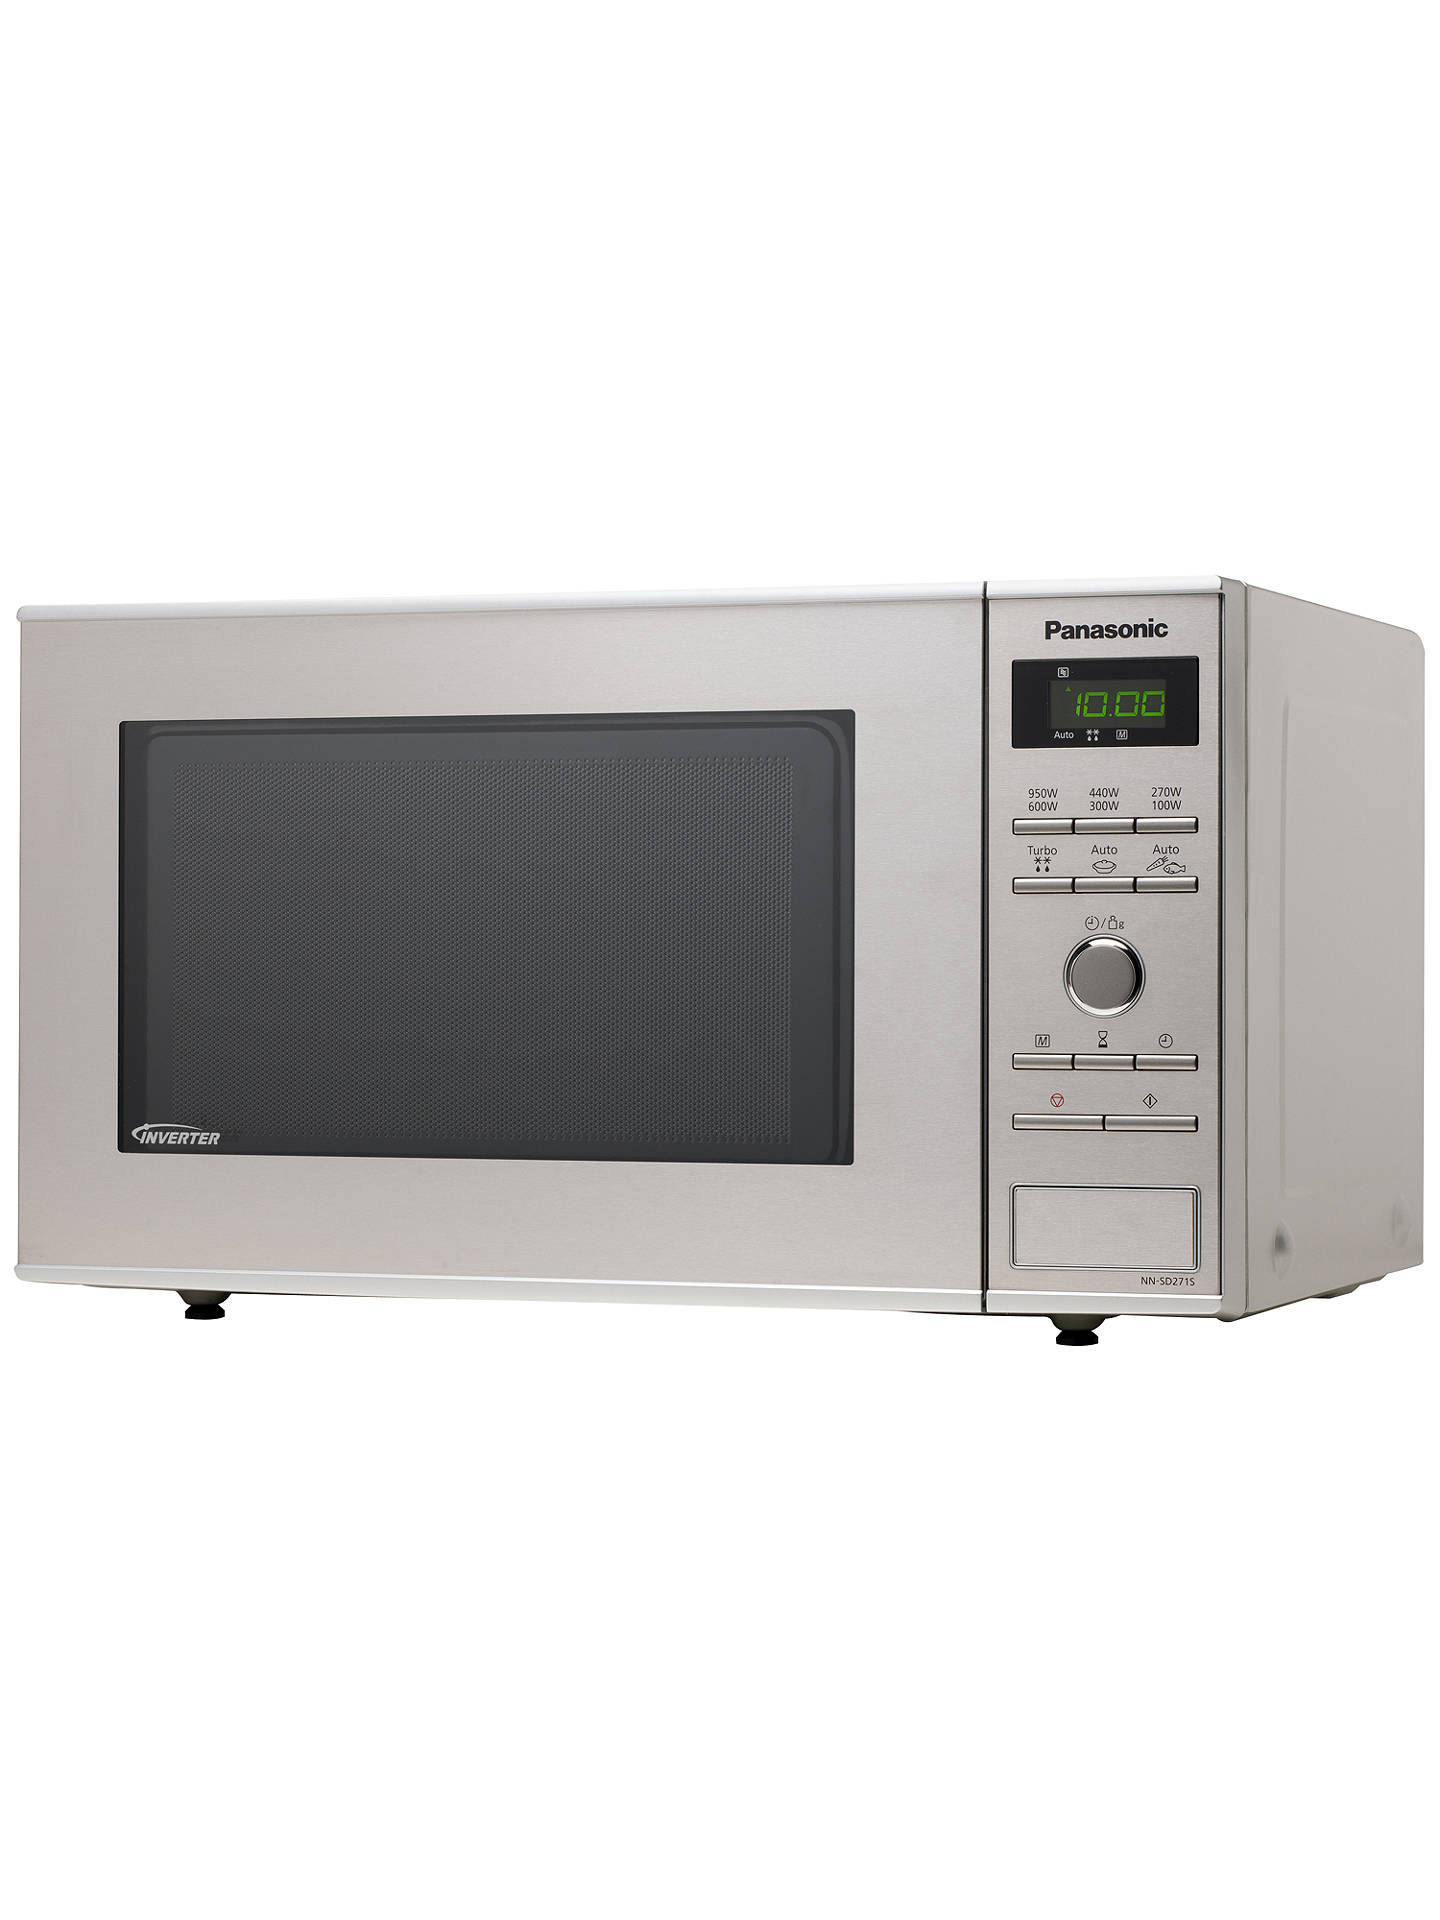 Panasonic Microwave Troubleshooting Bestmicrowave